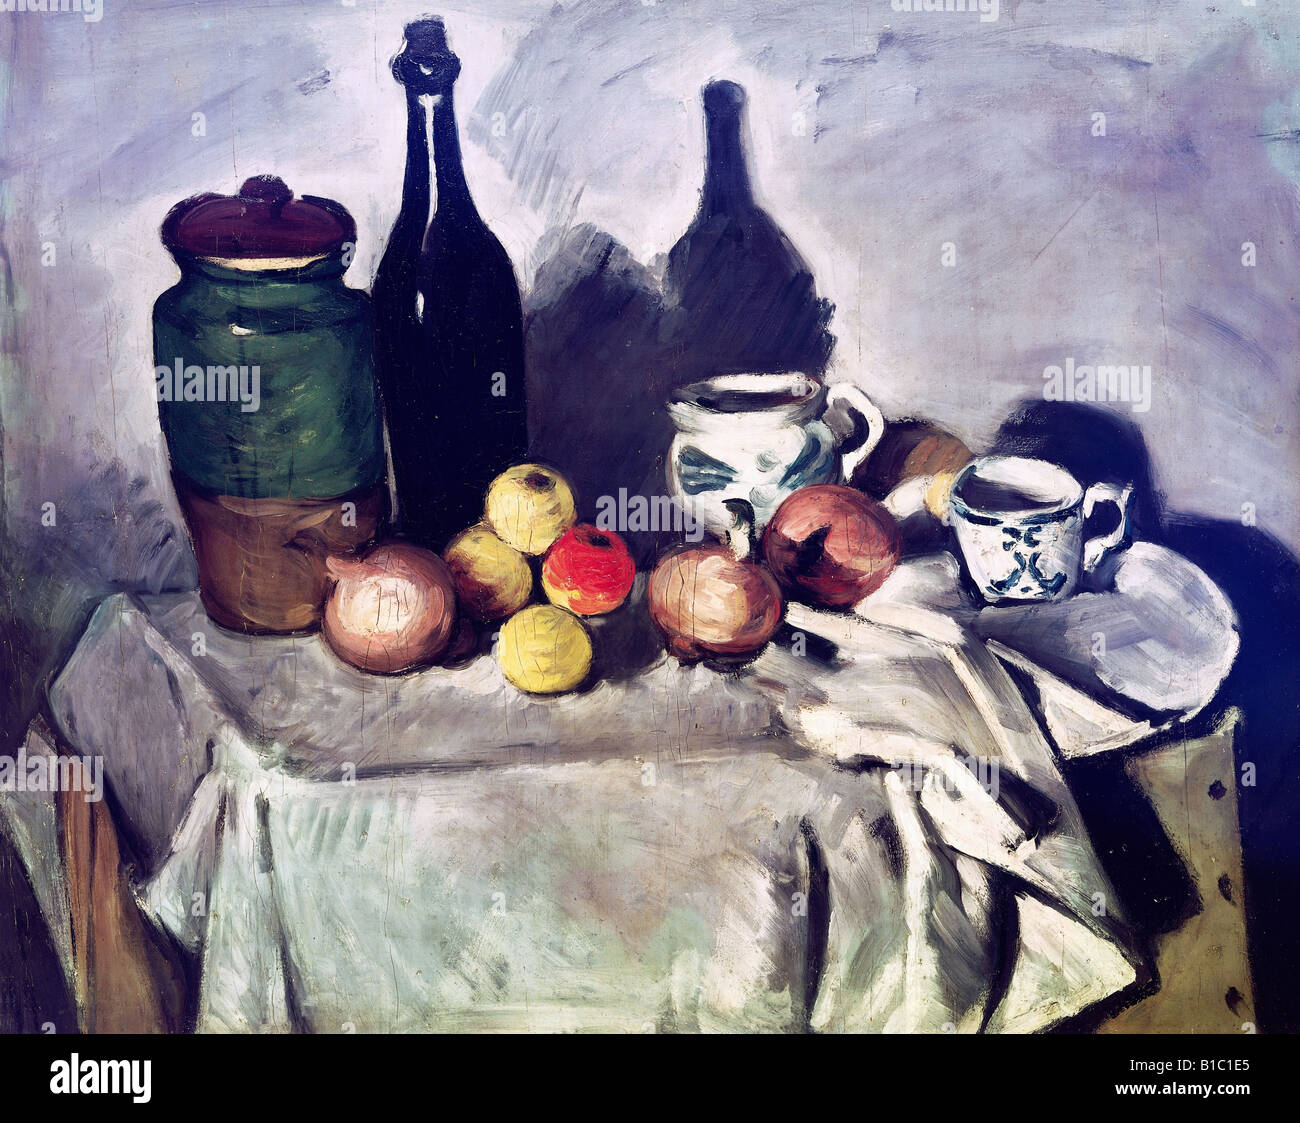 "fine arts, Cezanne, Paul, (19.1.1893 - 22.10.1906), painting, ""Still Life with Fruits and Dishes"", around 1869  Stock Foto"